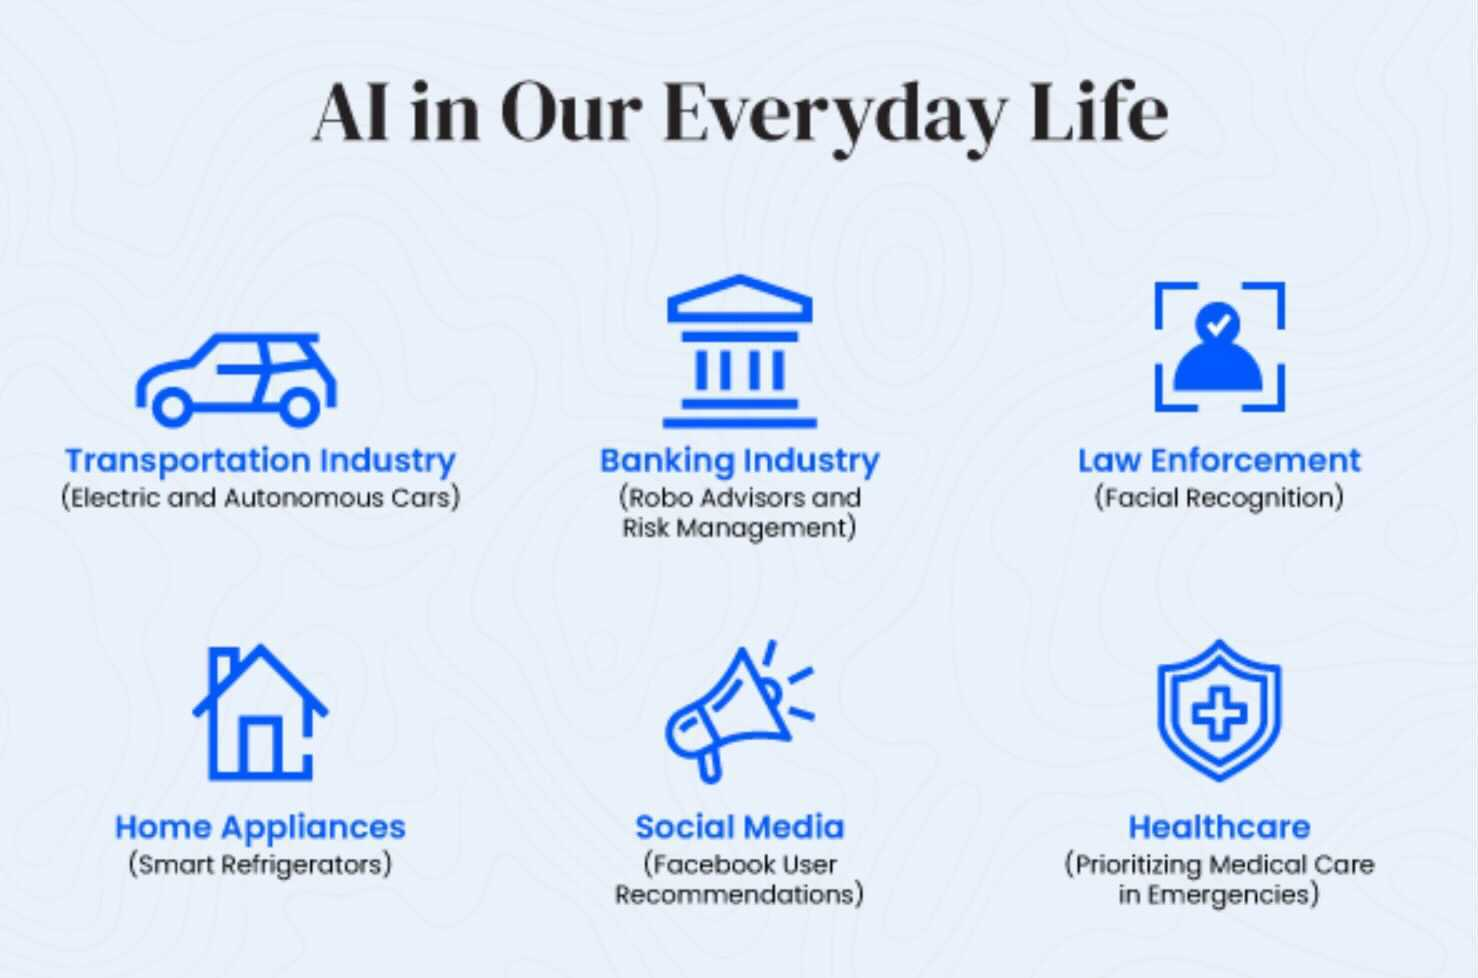 AI in our everyday life